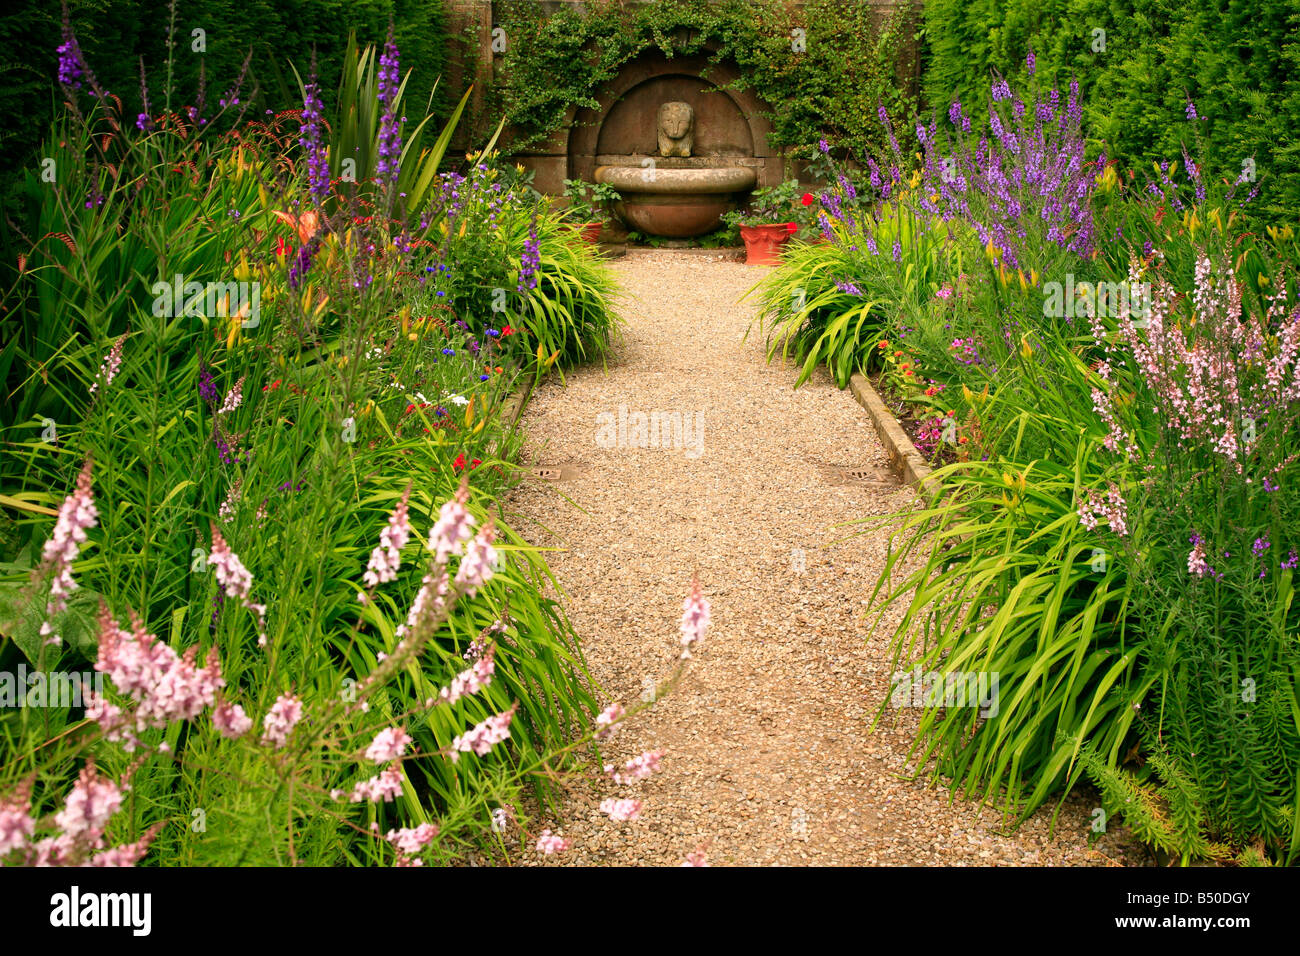 Lions head fountain in a beautiful country cottage garden. - Stock Image